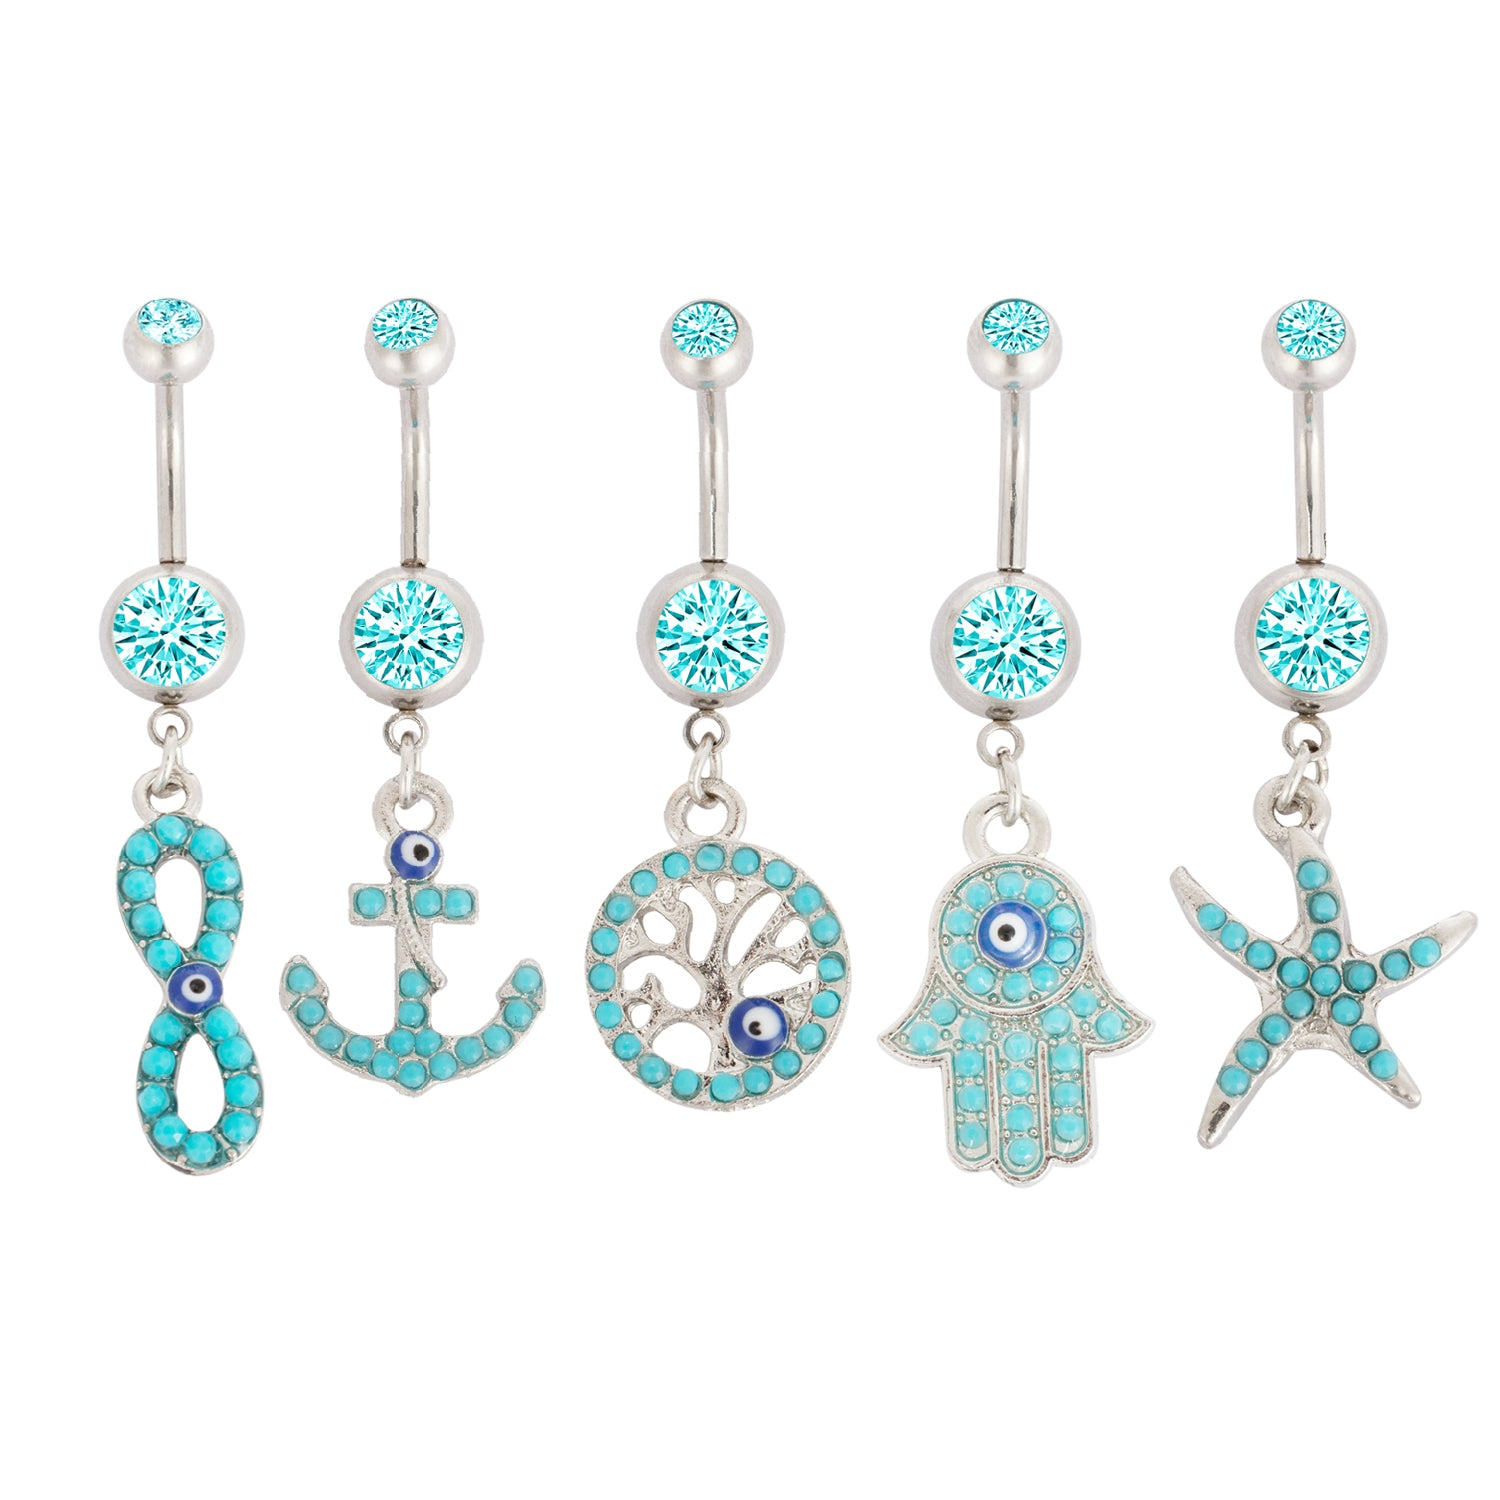 BodyJ4You® Belly Button Ring Evil Eye Navel Turquoise Gem Lot of 5 Pieces Piercing Jewelry